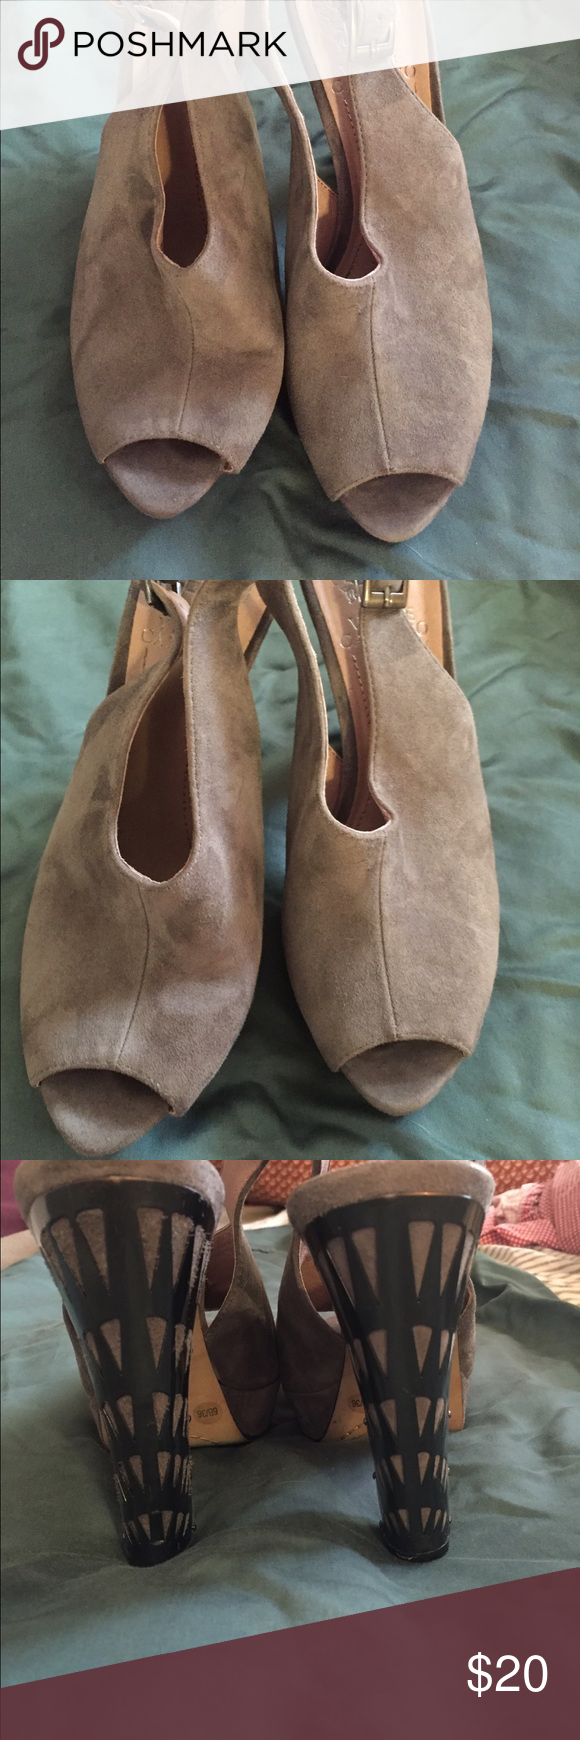 Vince Camuto Open Toe Gray Suede Shoes 6B  Used Beautiful and comfortable suede shoes gently worn no stains no blemishes little wear under the toes Vince Camuto Shoes Platforms